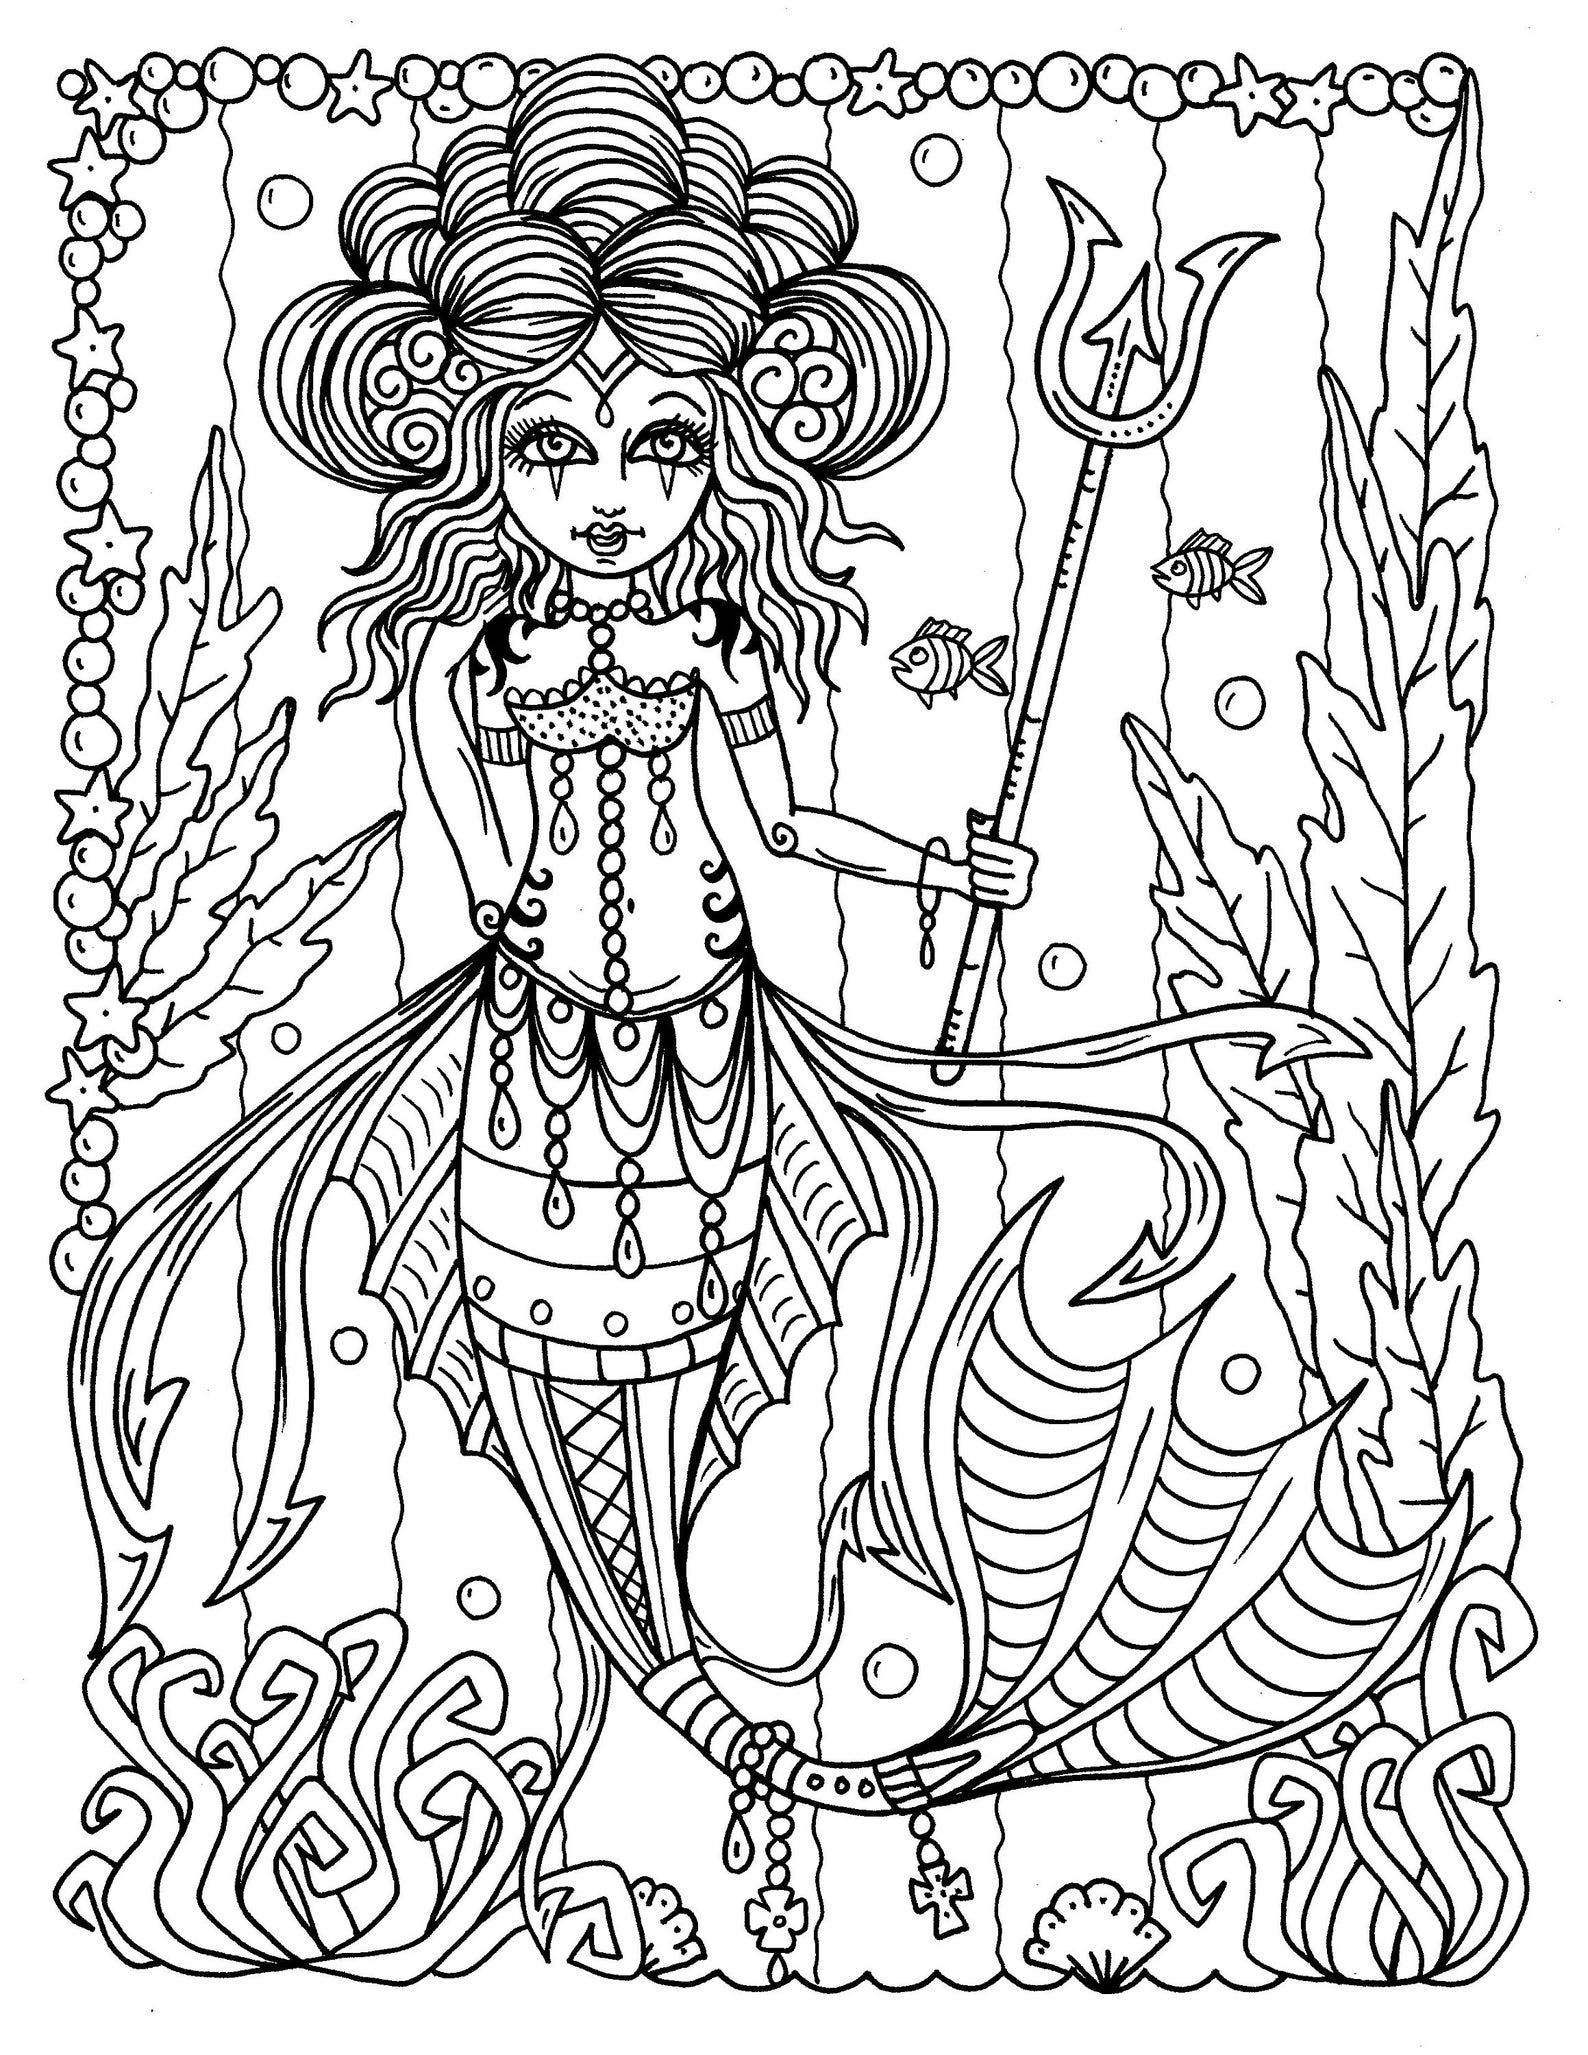 Instant Download Gothic Mermaids Coloring Book For All Ages Etsy Mermaid Coloring Book Mermaid Coloring Pages Coloring Books